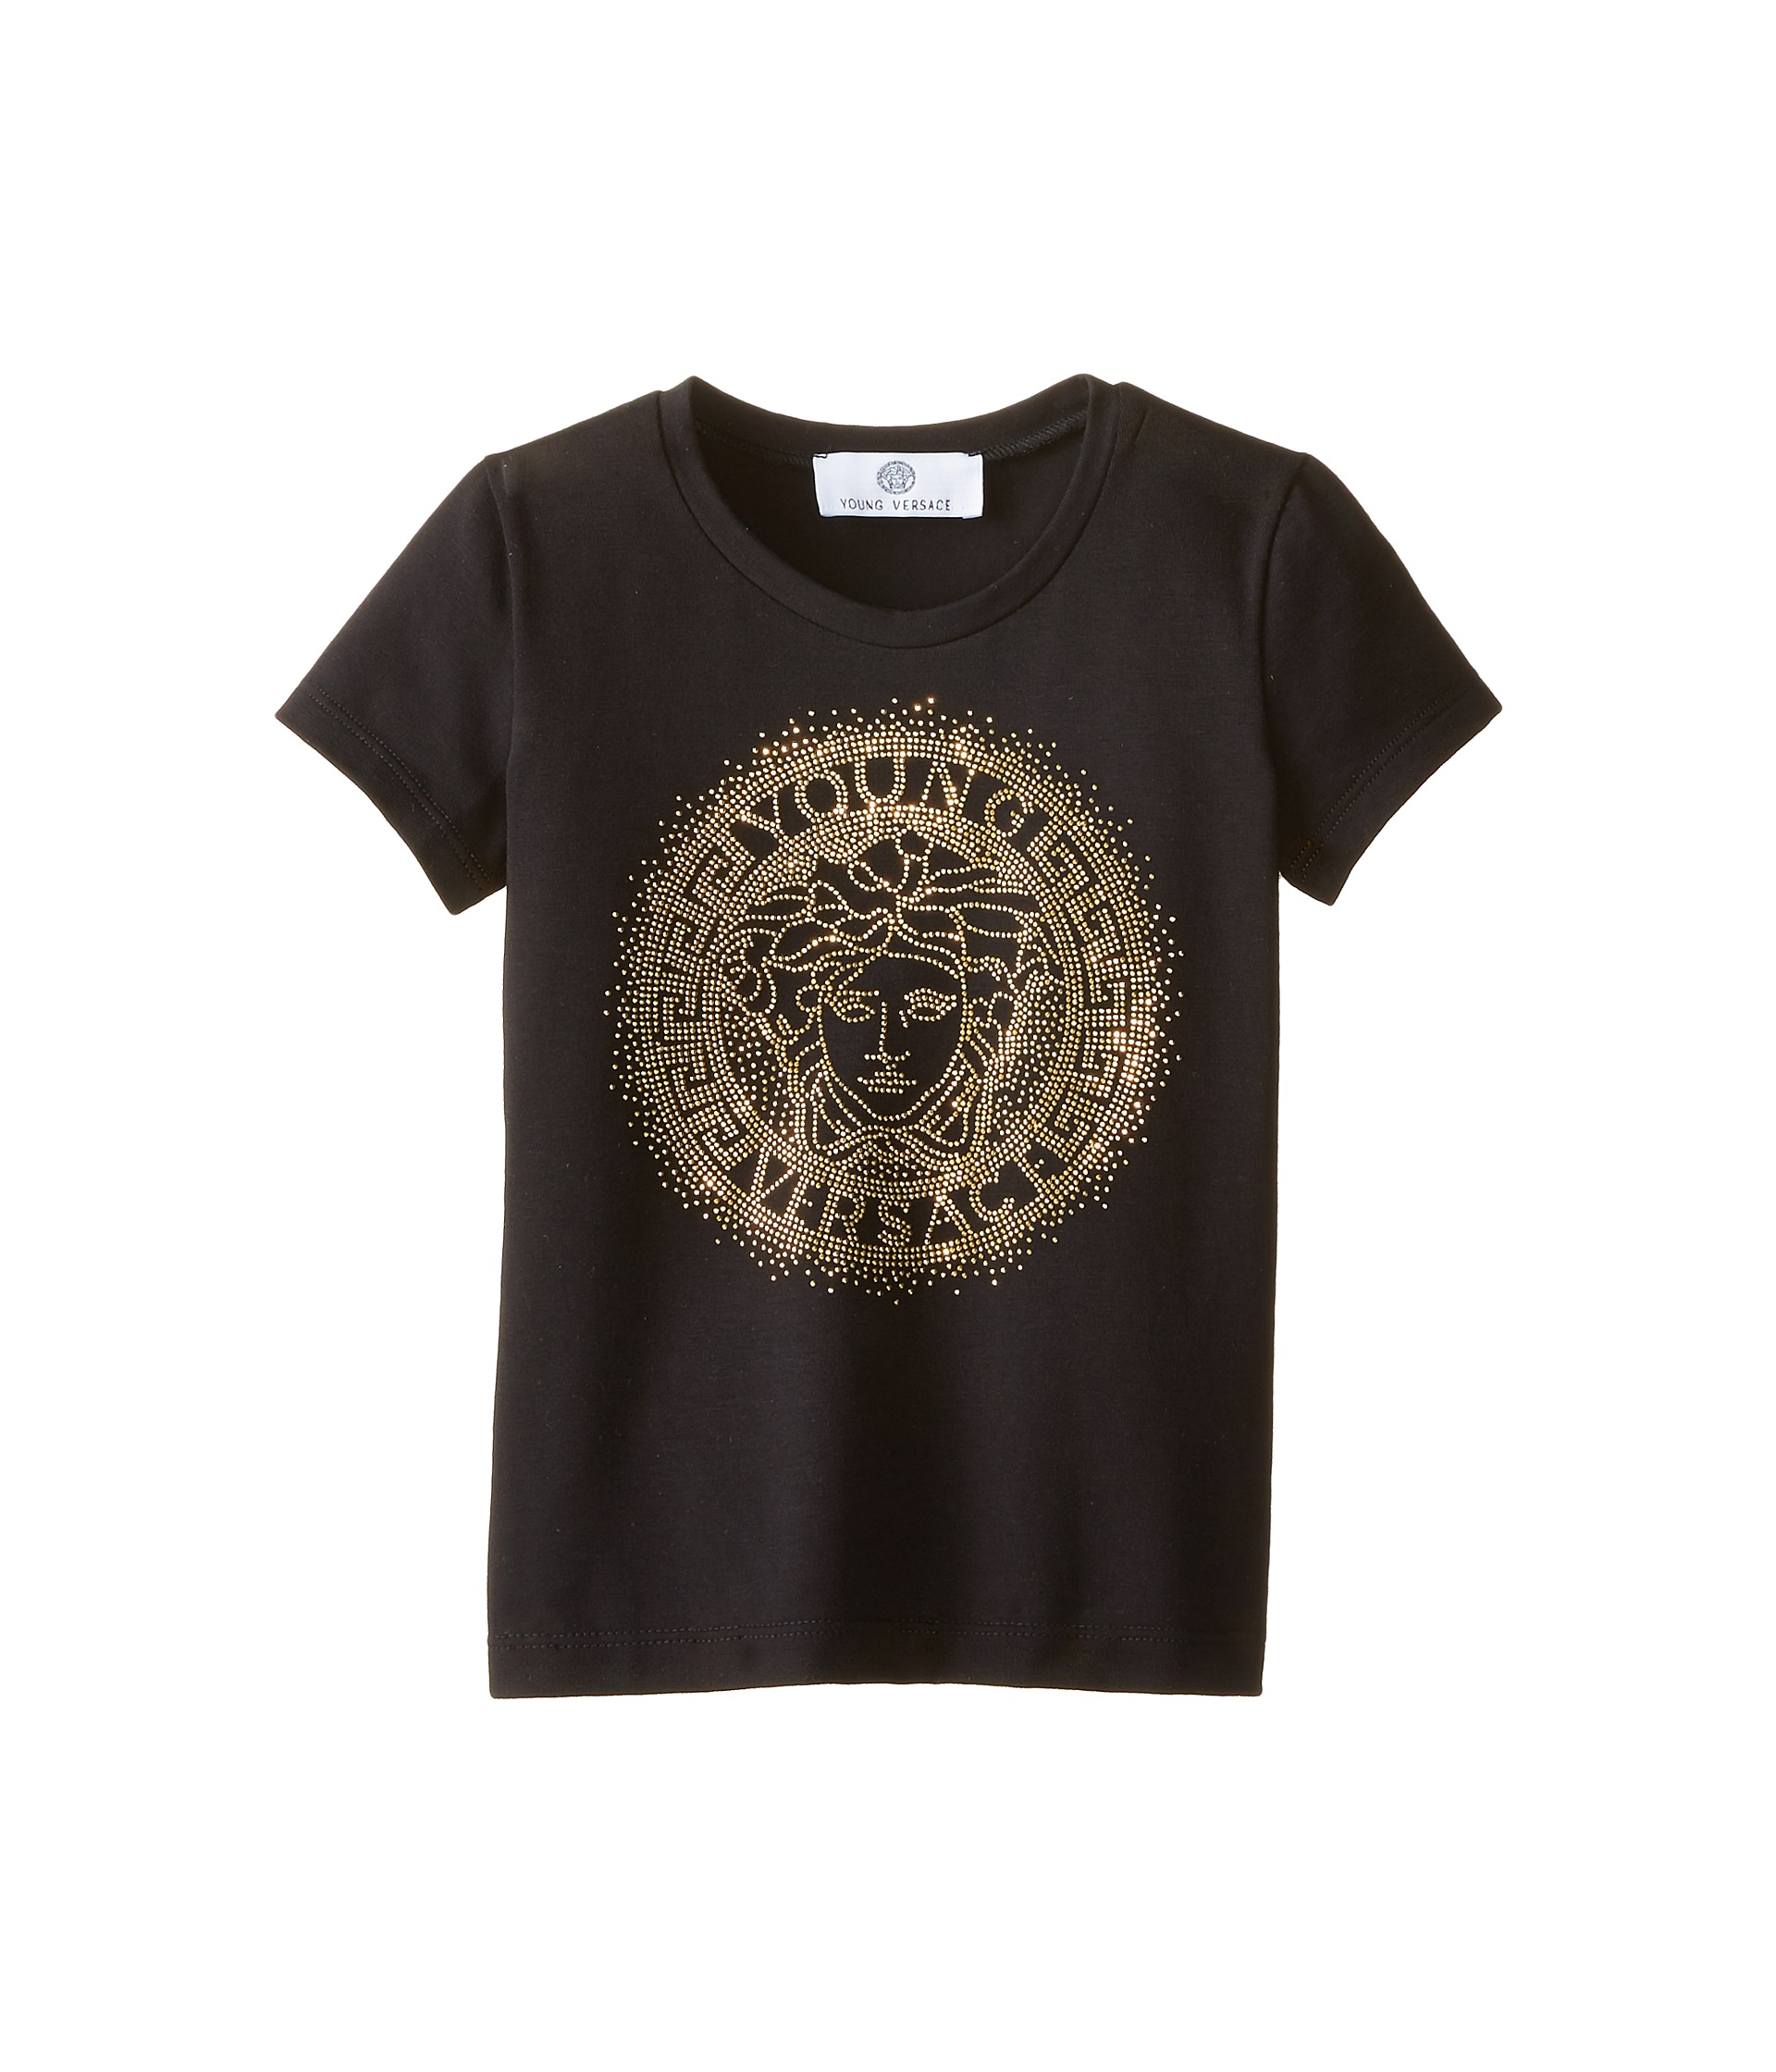 Find Versace clothing for kids at ShopStyle. Shop the latest collection of Versace clothing for kids from the most popular stores - all in one place. Skip to Content Versace embroidered logo waistband shorts $– $ Get a Sale Alert at Farfetch Versace.